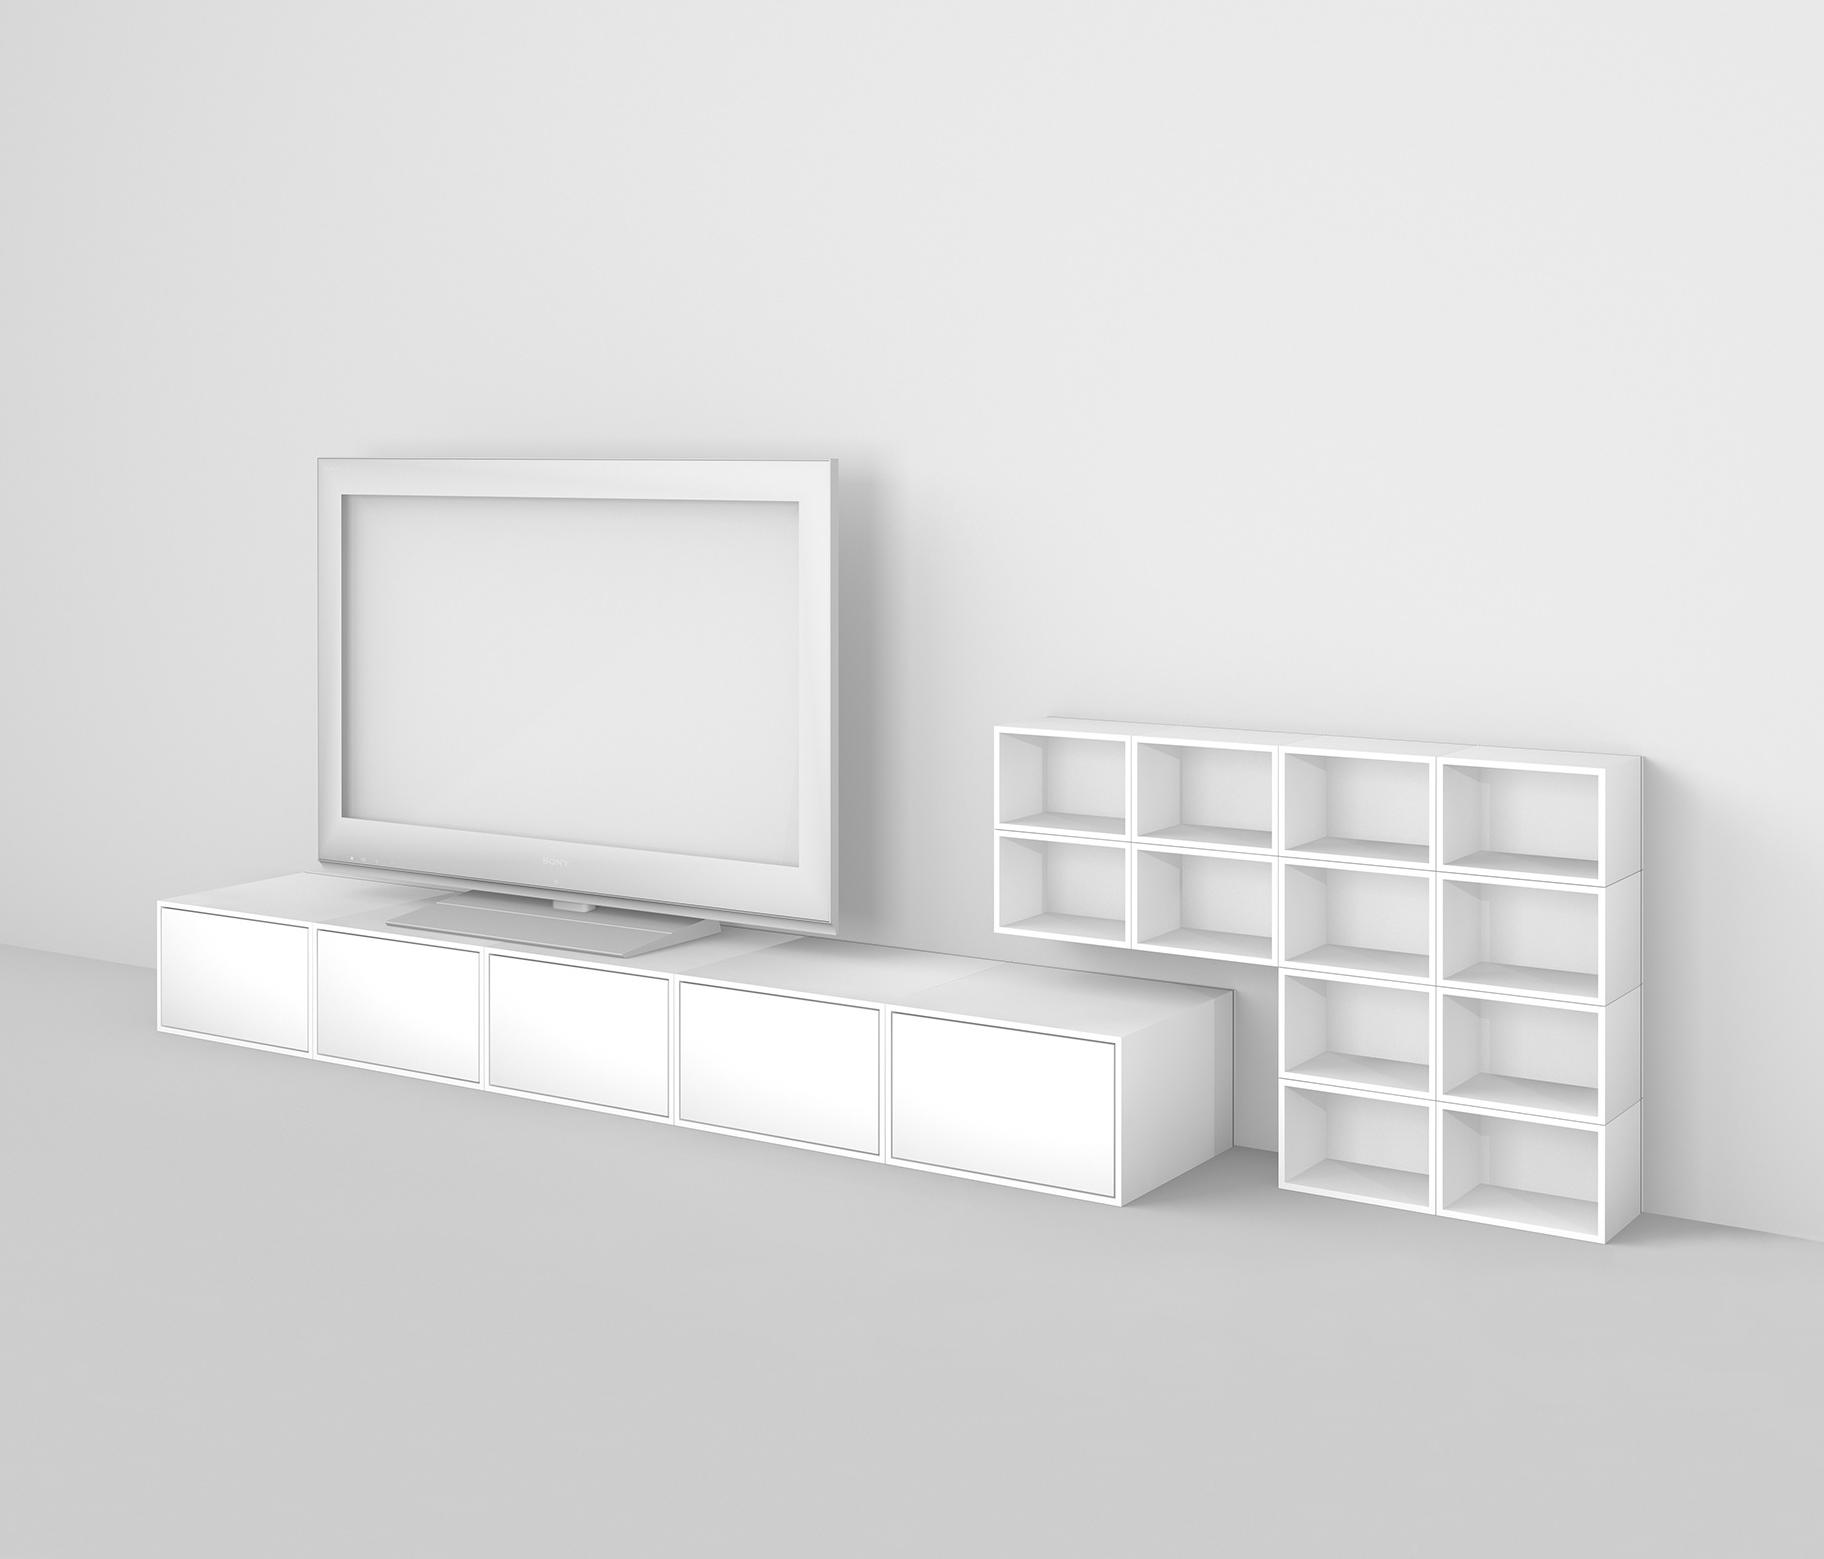 cubit shelving system cd racks from cubit architonic. Black Bedroom Furniture Sets. Home Design Ideas